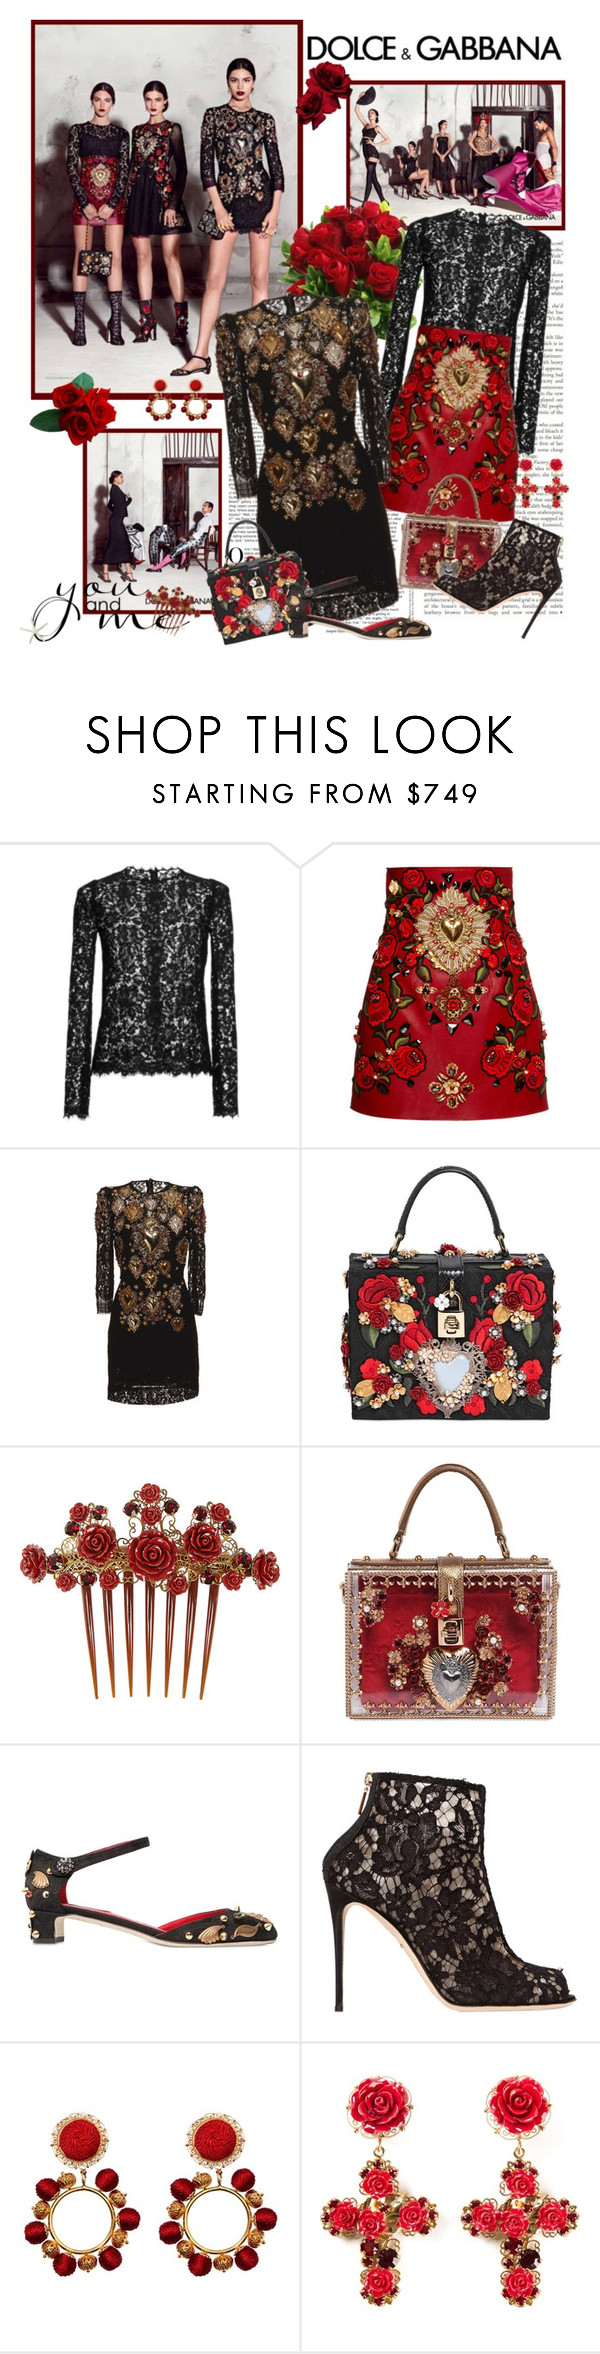 """Dolce & Gabbana SS 2015"" by mrekulli ❤ liked on Polyvore featuring Dolce&Gabbana"